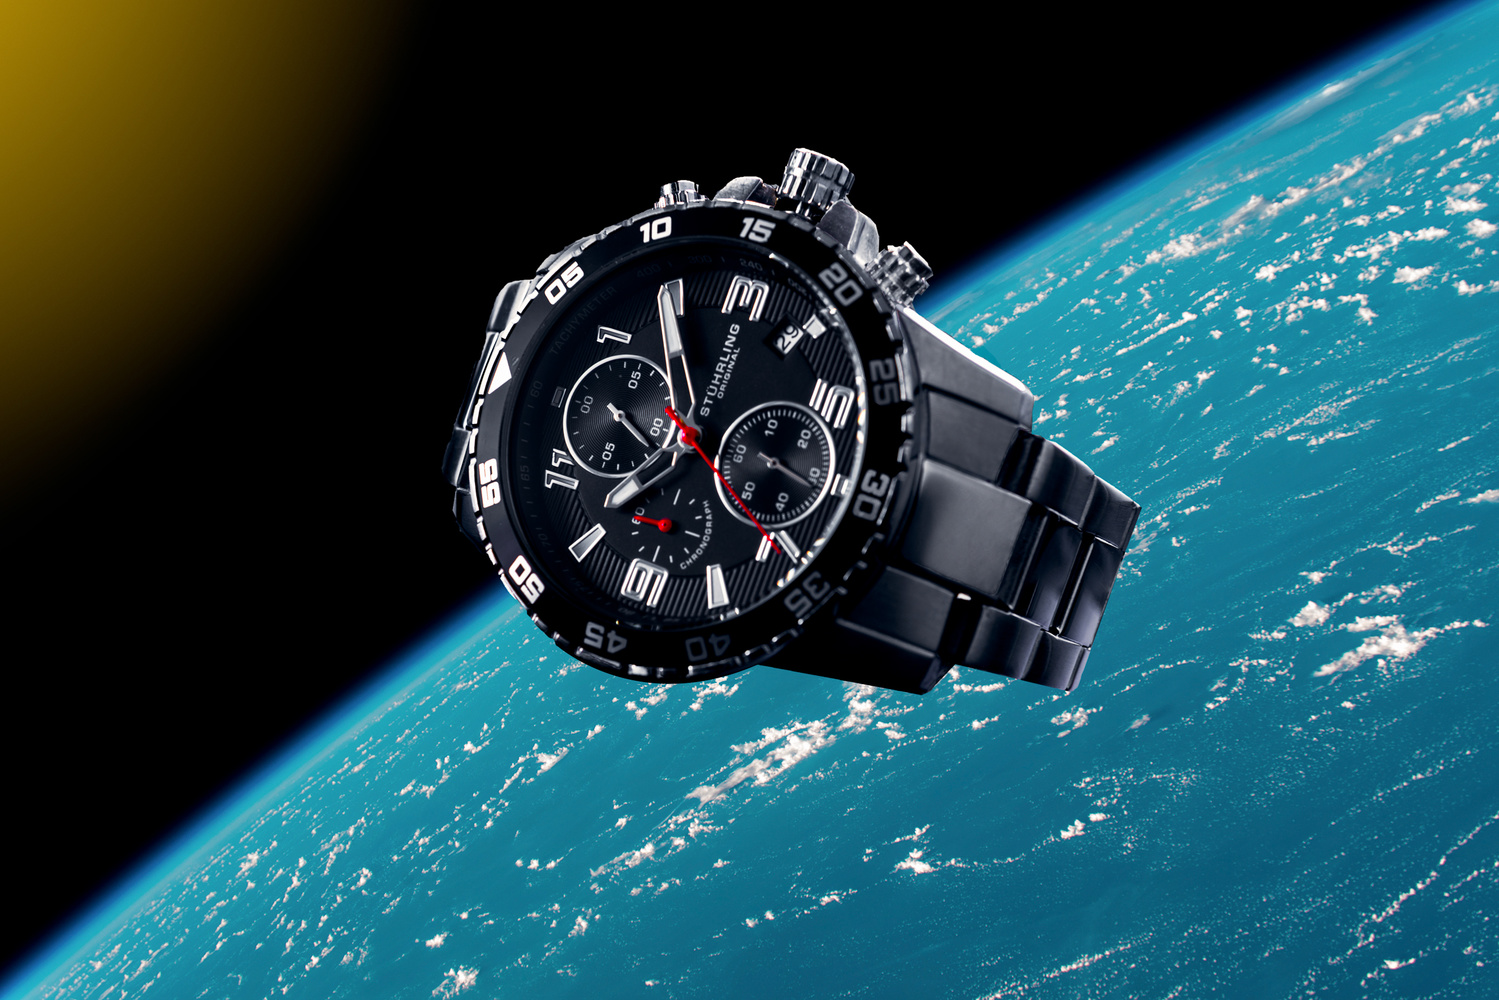 Watch Photography - In Space by Bart Edson